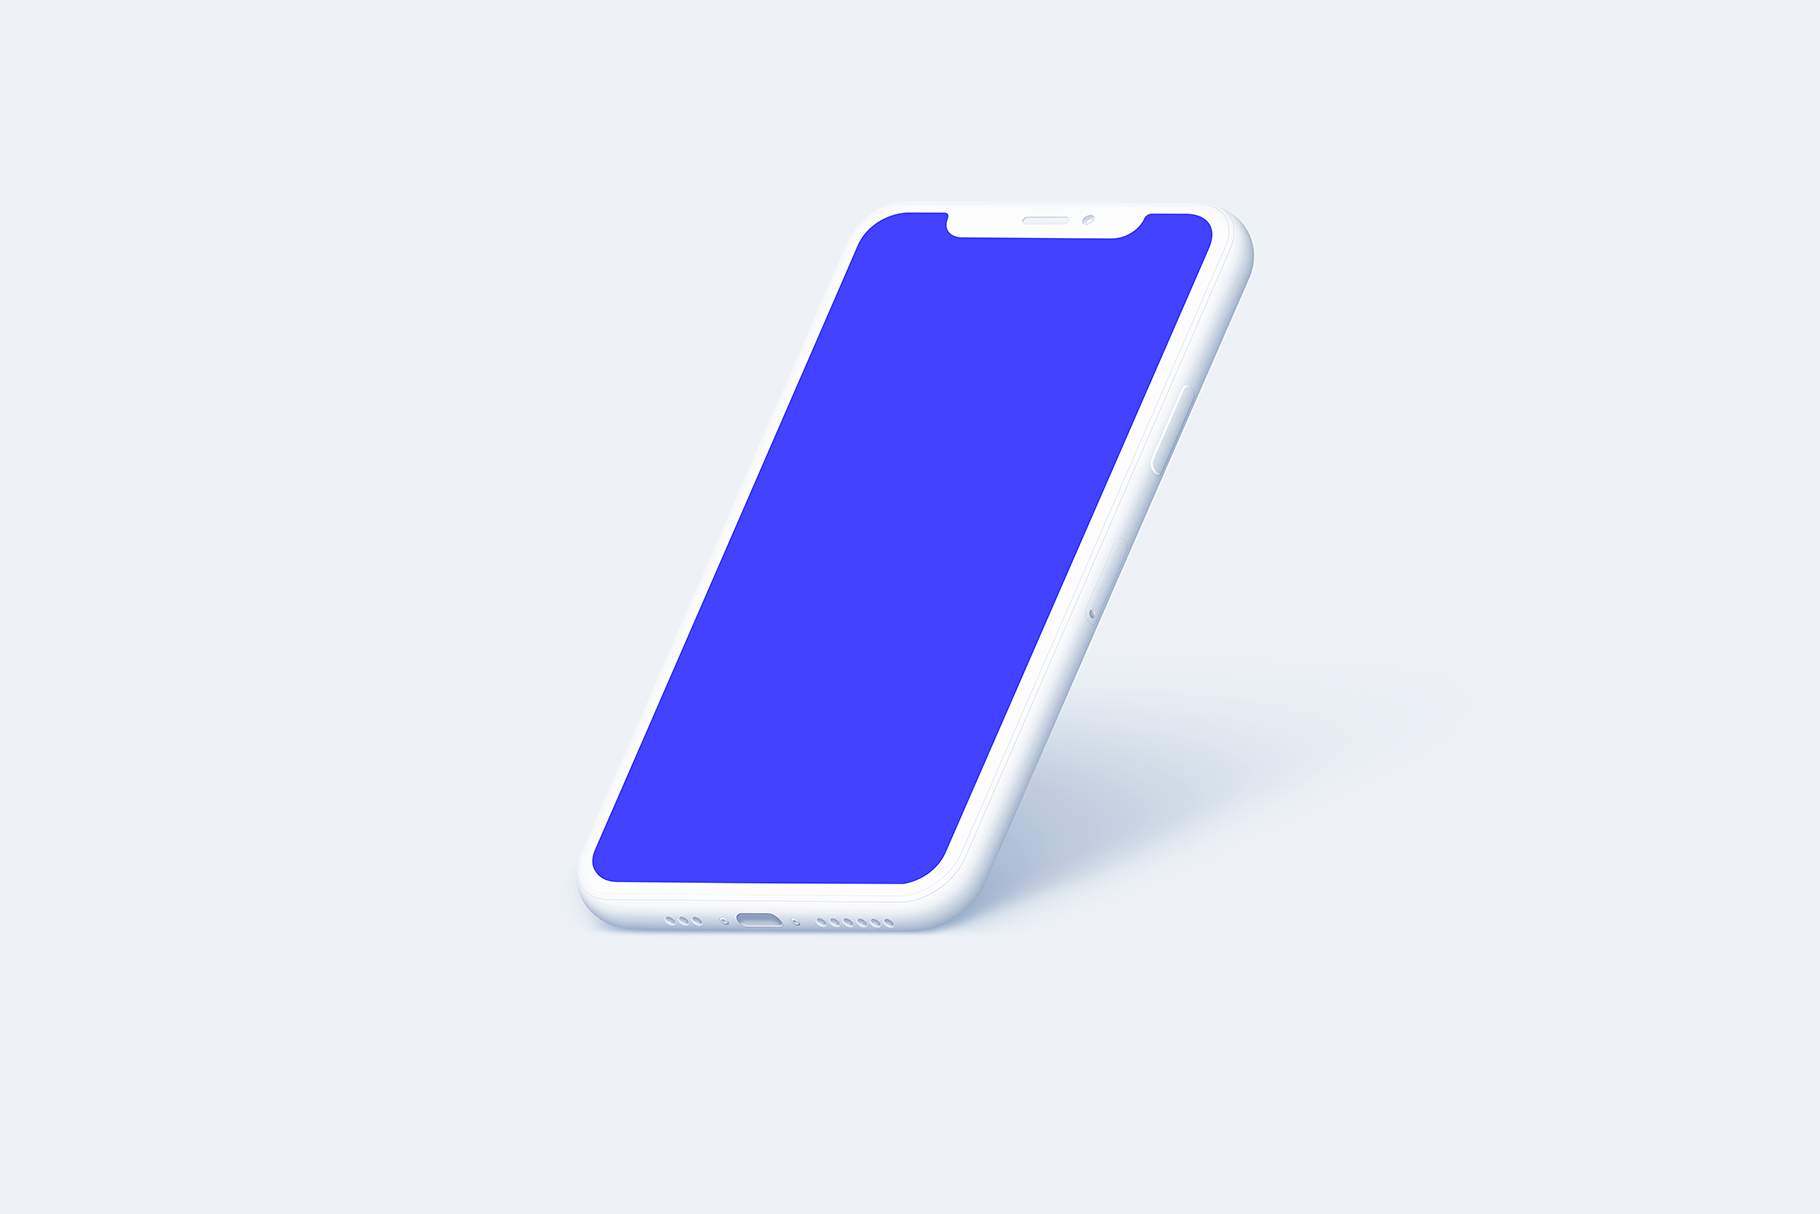 iPhone 11 Pro - 20 Clay Mockups Scenes - PSD example image 18